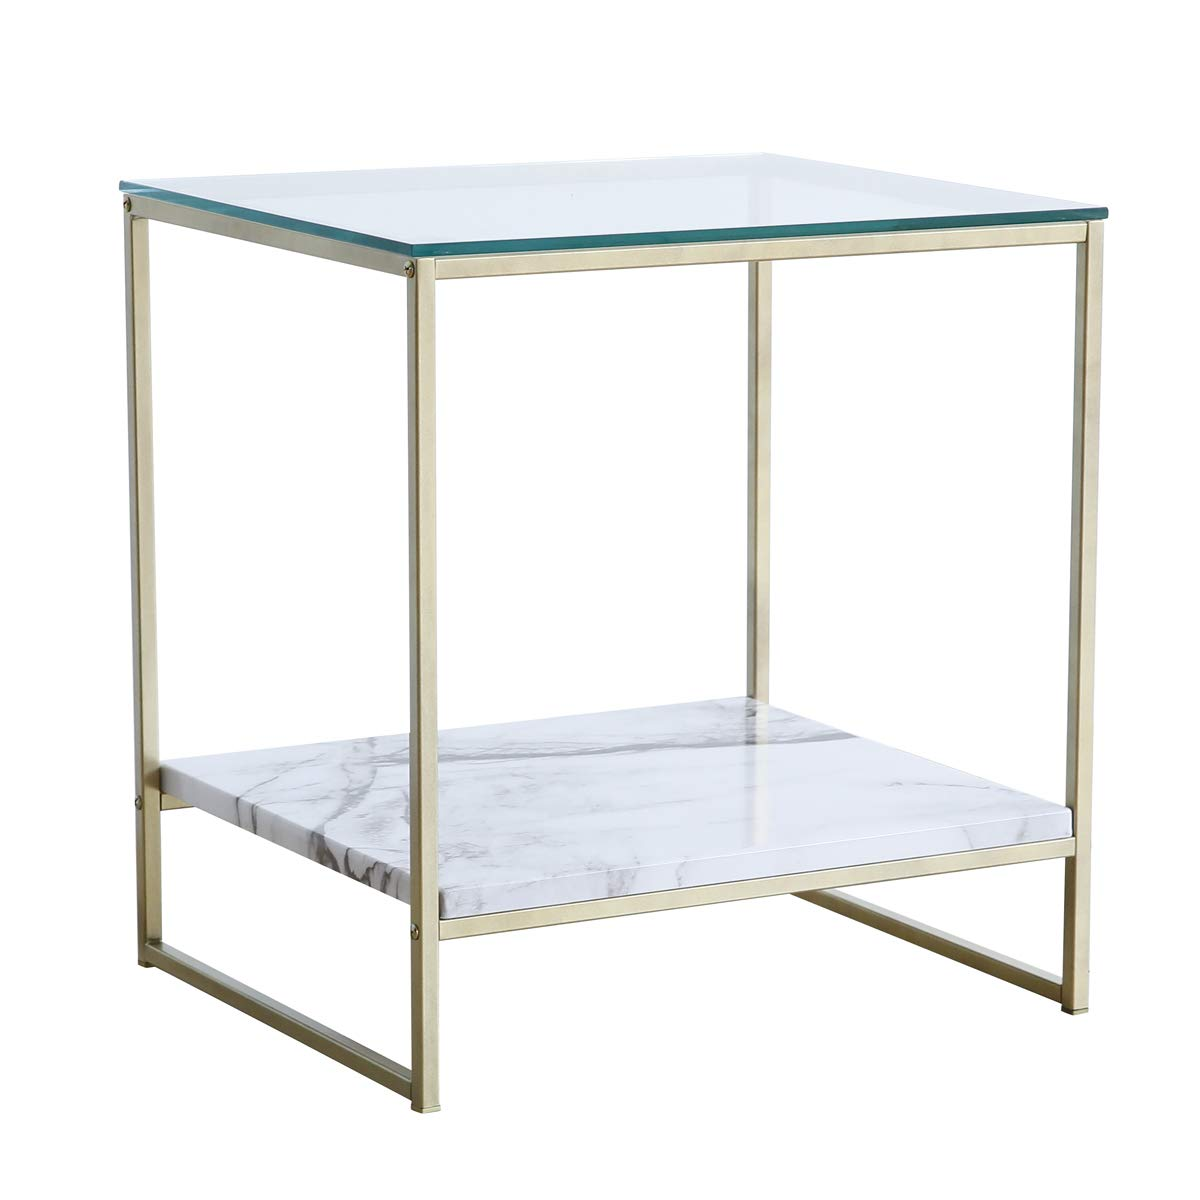 Tilly Lin Glass Top Faux Marble End Side Table/Night Stand with Gold Metal Legs by Tilly Lin